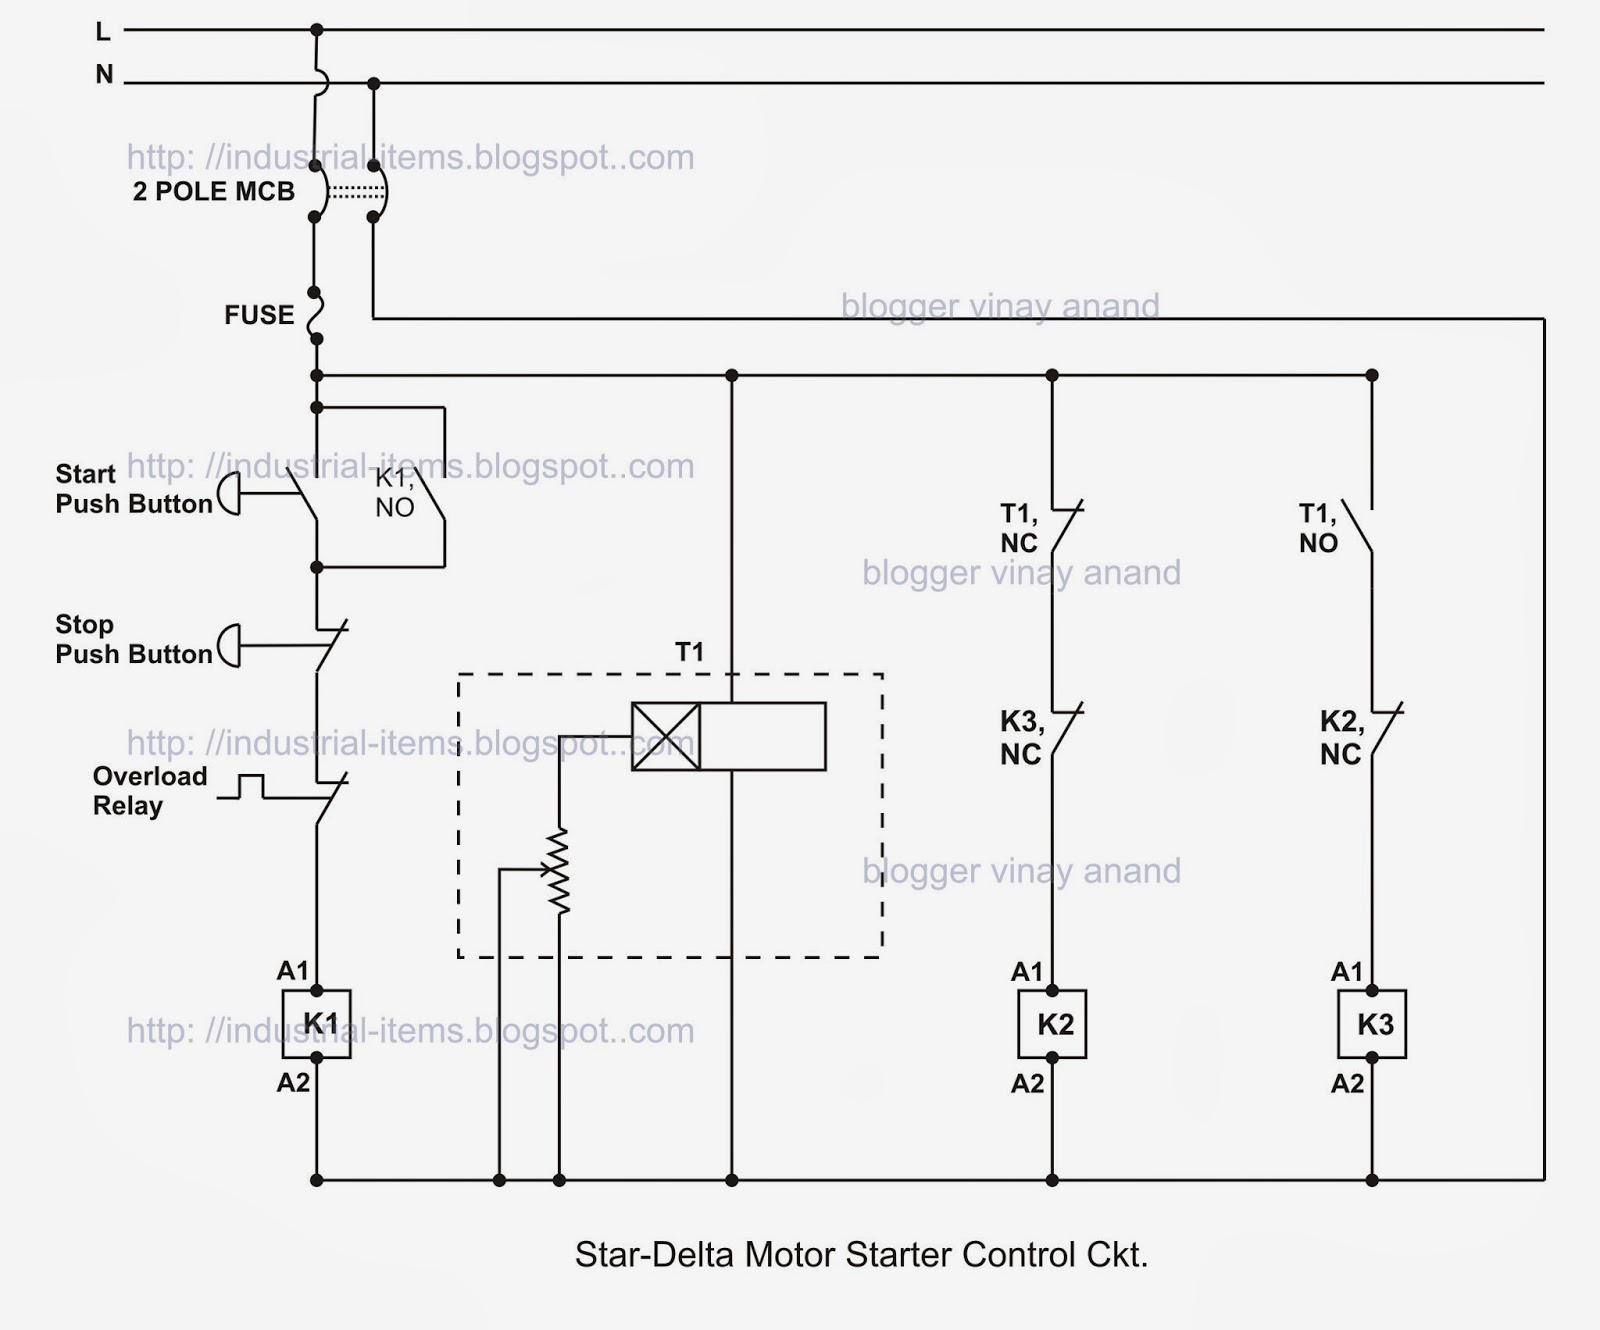 star delta motor connection diagram images star delta motor diagram on wye delta motor starter circuit further star